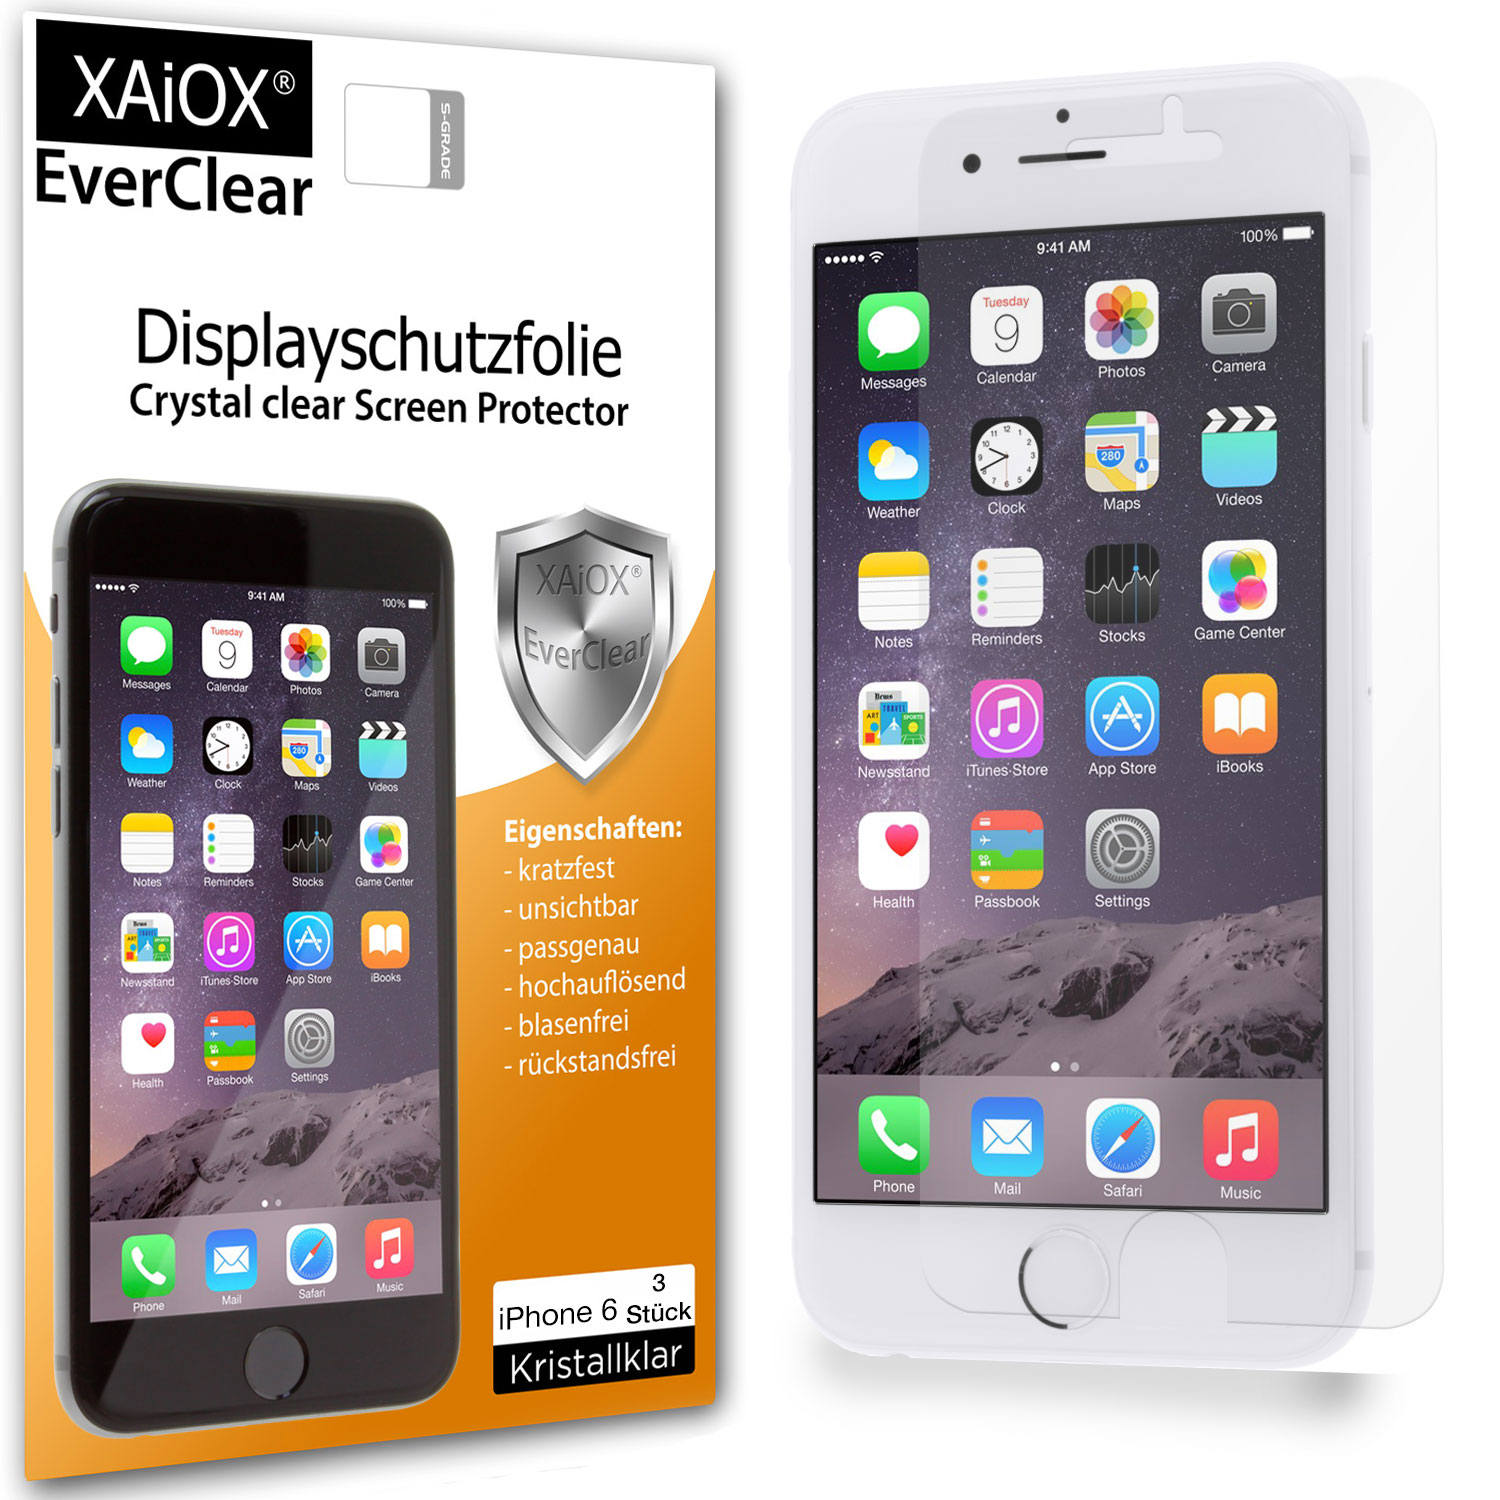 1x XAiOX Everclear Displayschutzfolie für iPhone 6 (3er Set)